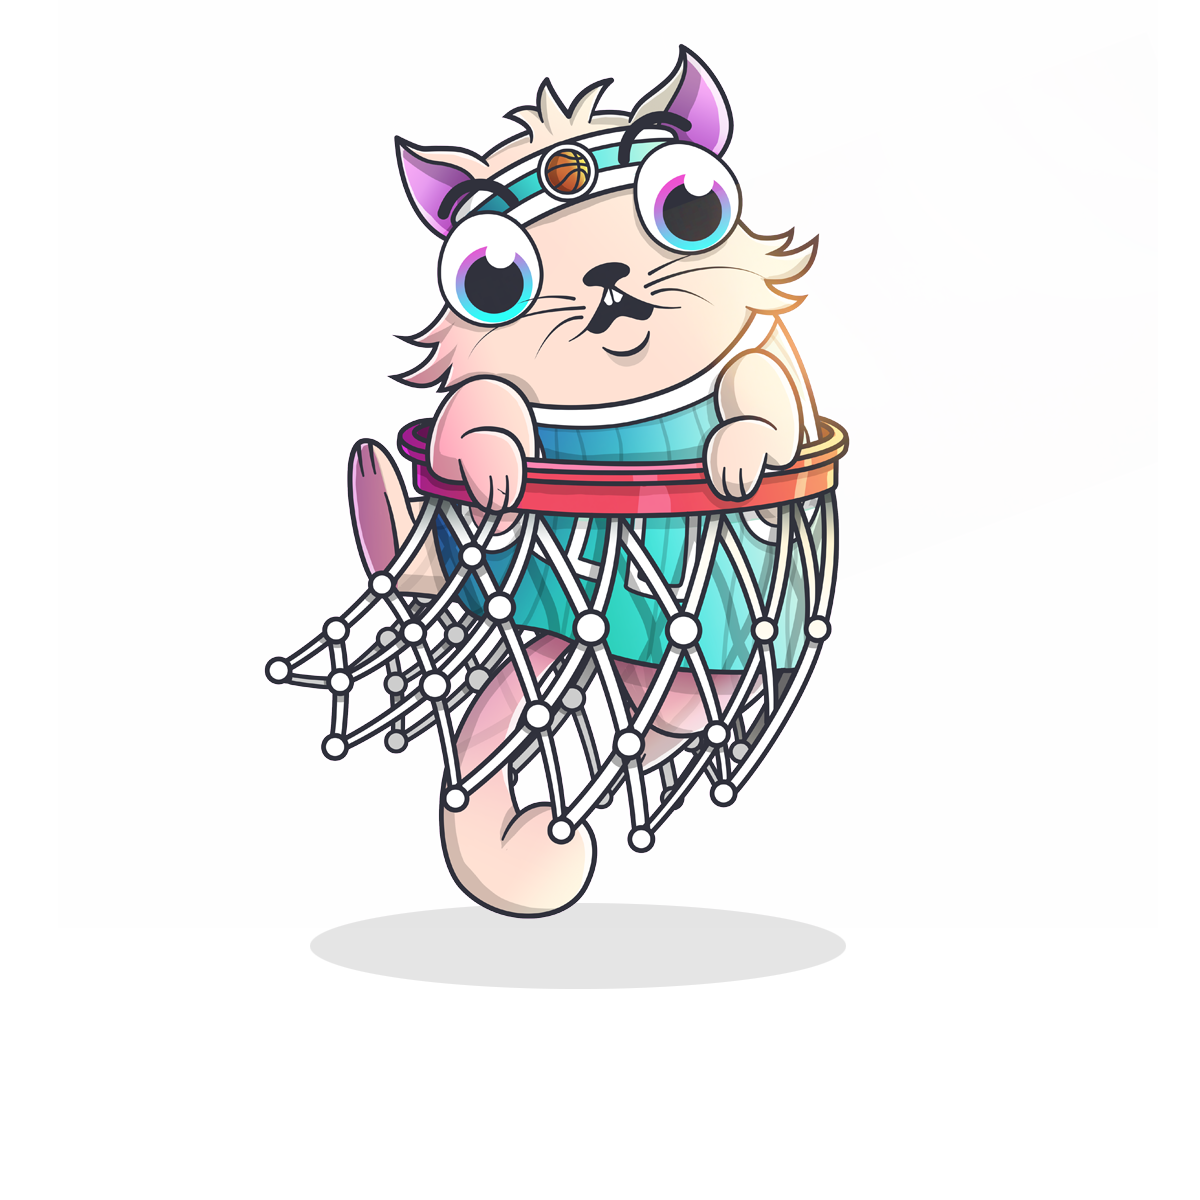 cryptokitty #788878